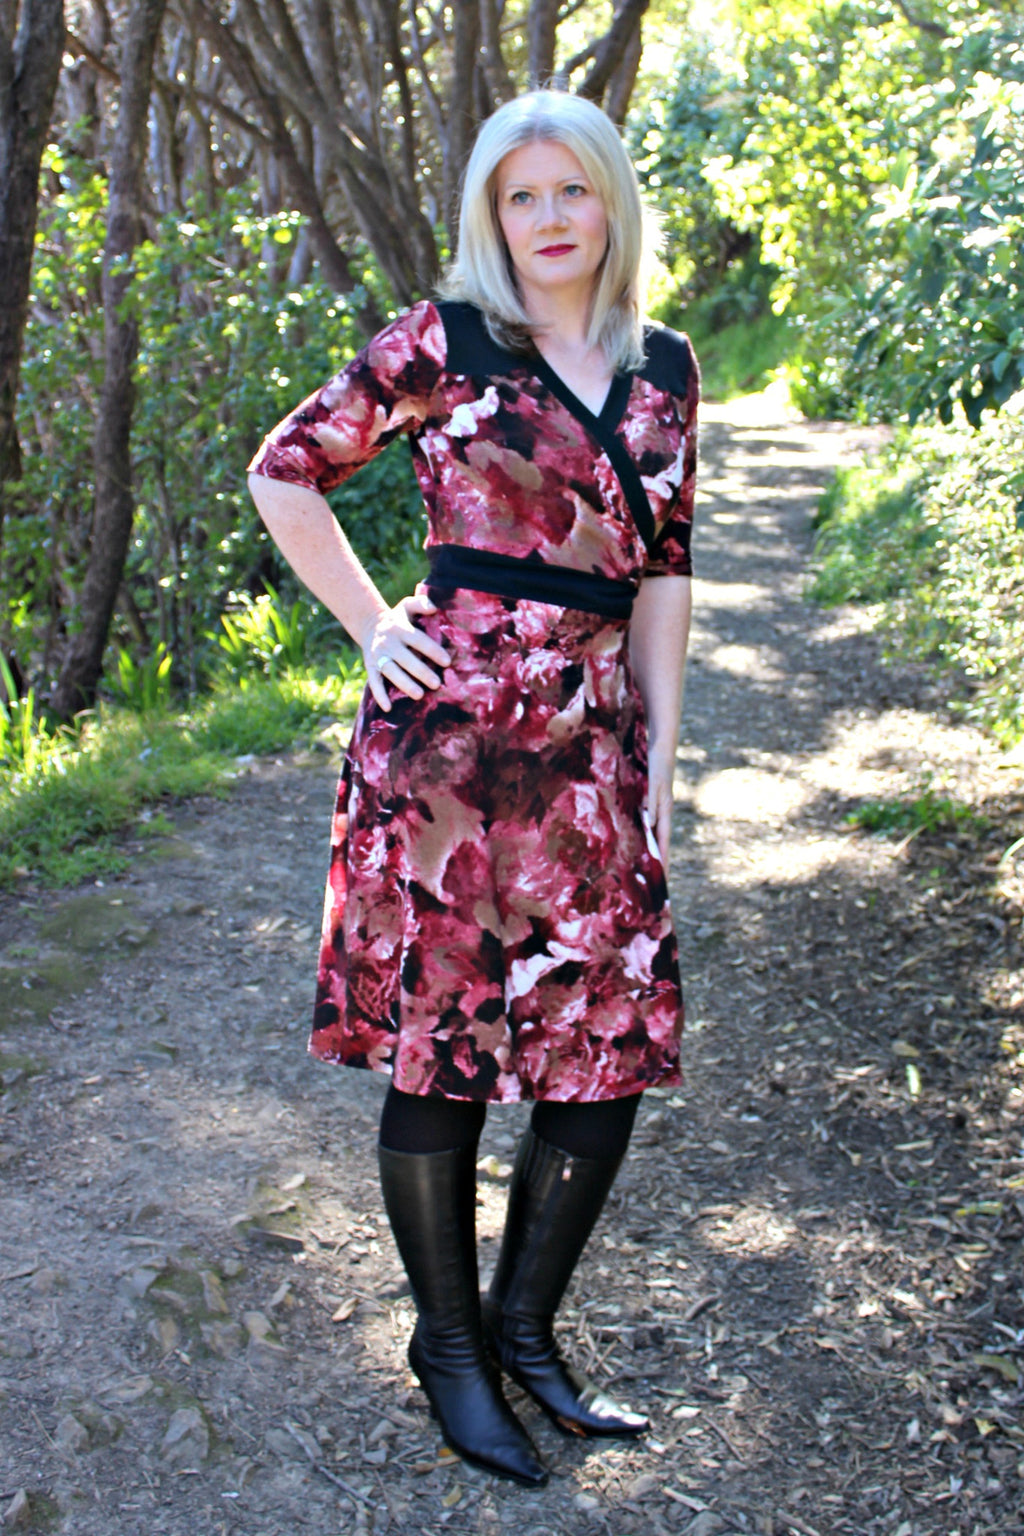 Gillian Dress - dress variation, front